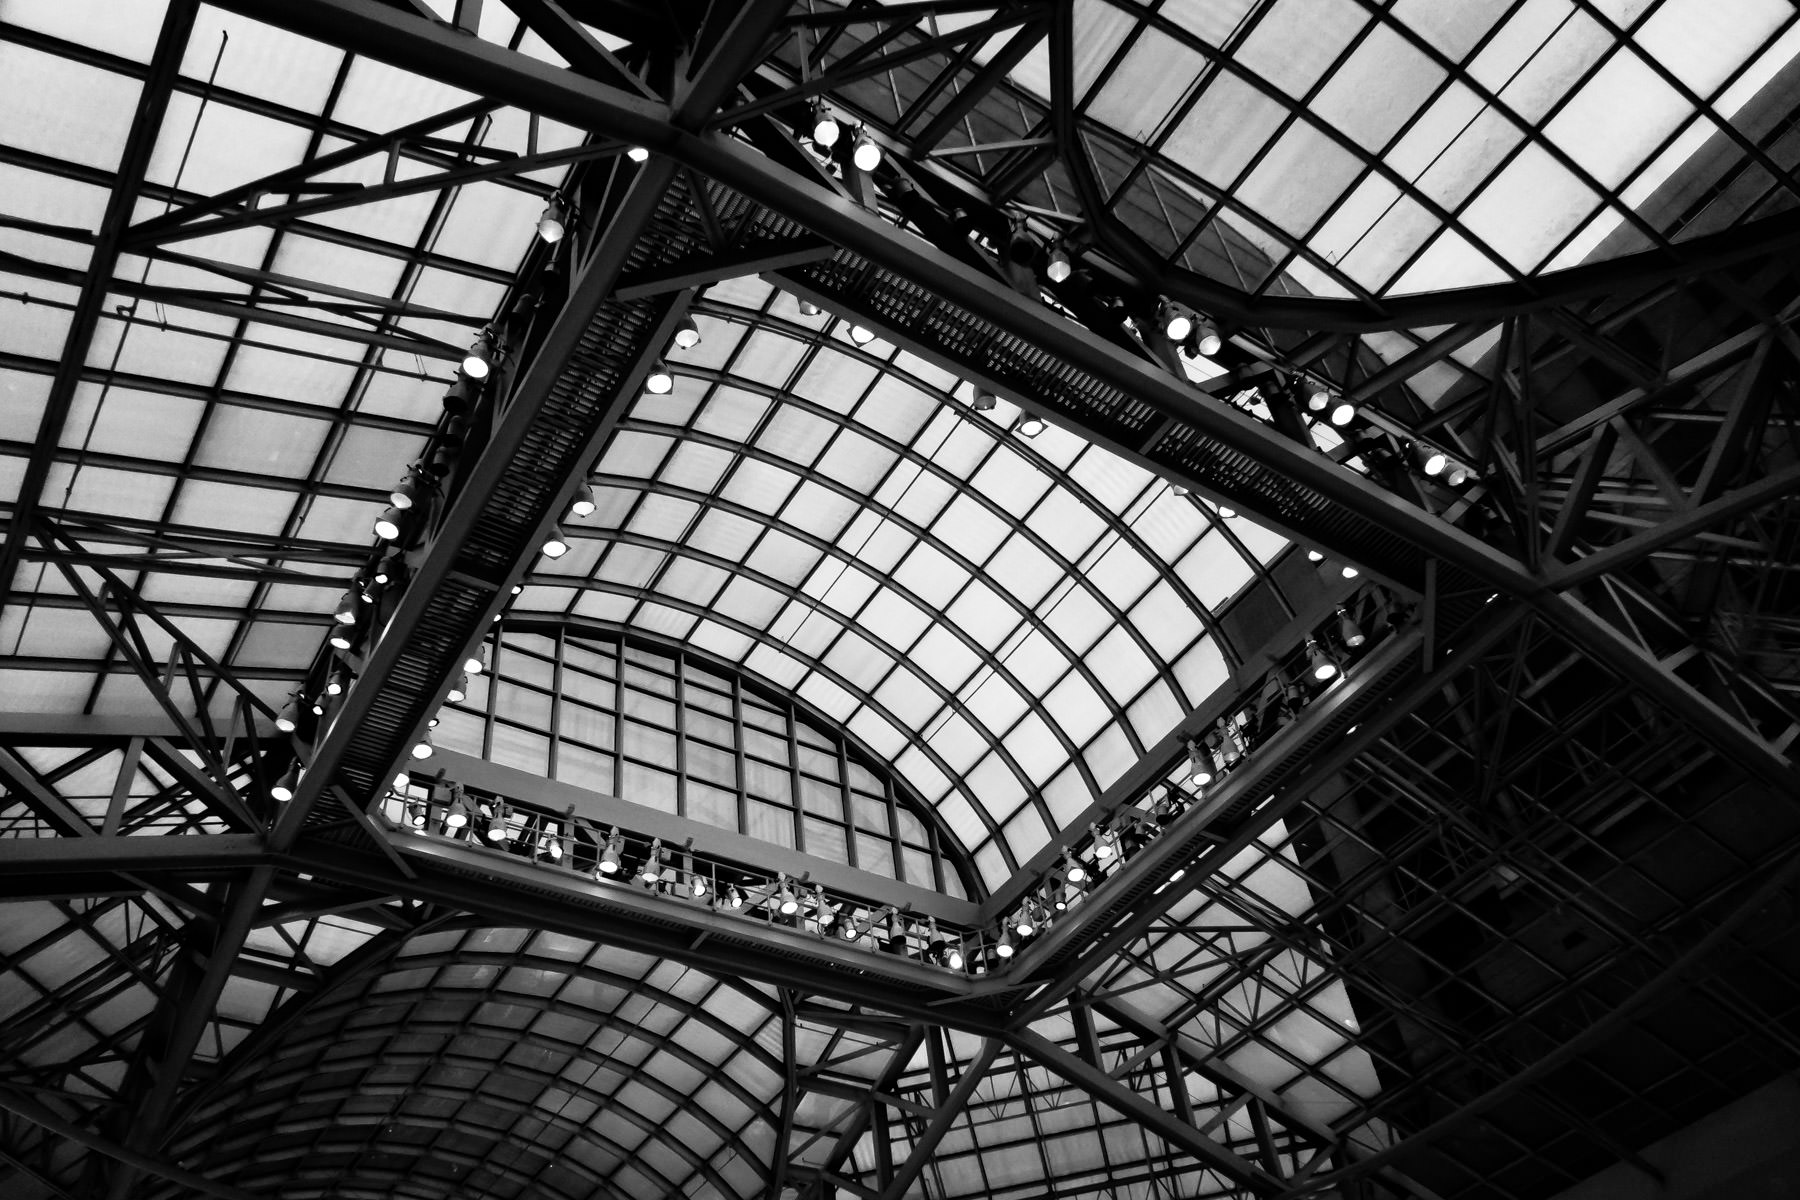 The intricate glass roof of the Dallas Galleria.